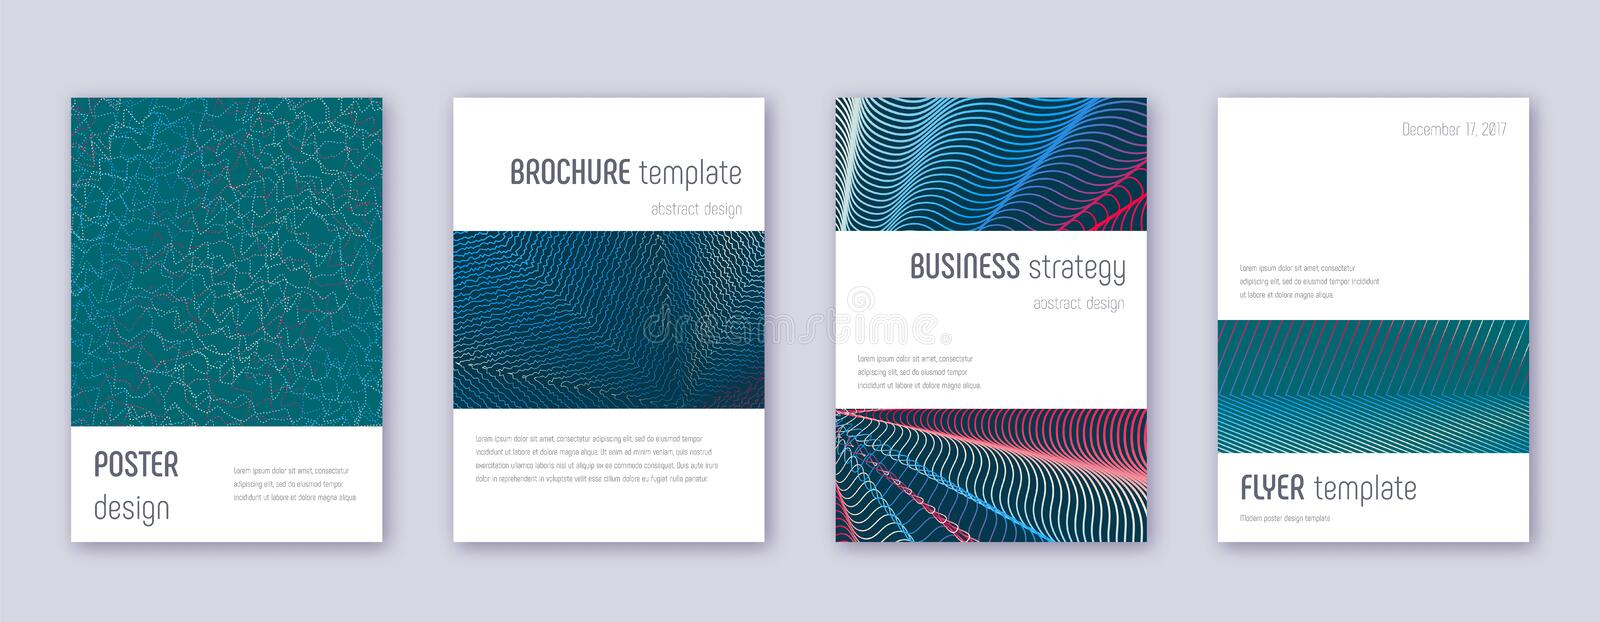 Minimalistic brochure design template set. Red abstract lines on white blue background. Authentic brochure design. Extraordinary catalog, poster, book template vector illustration